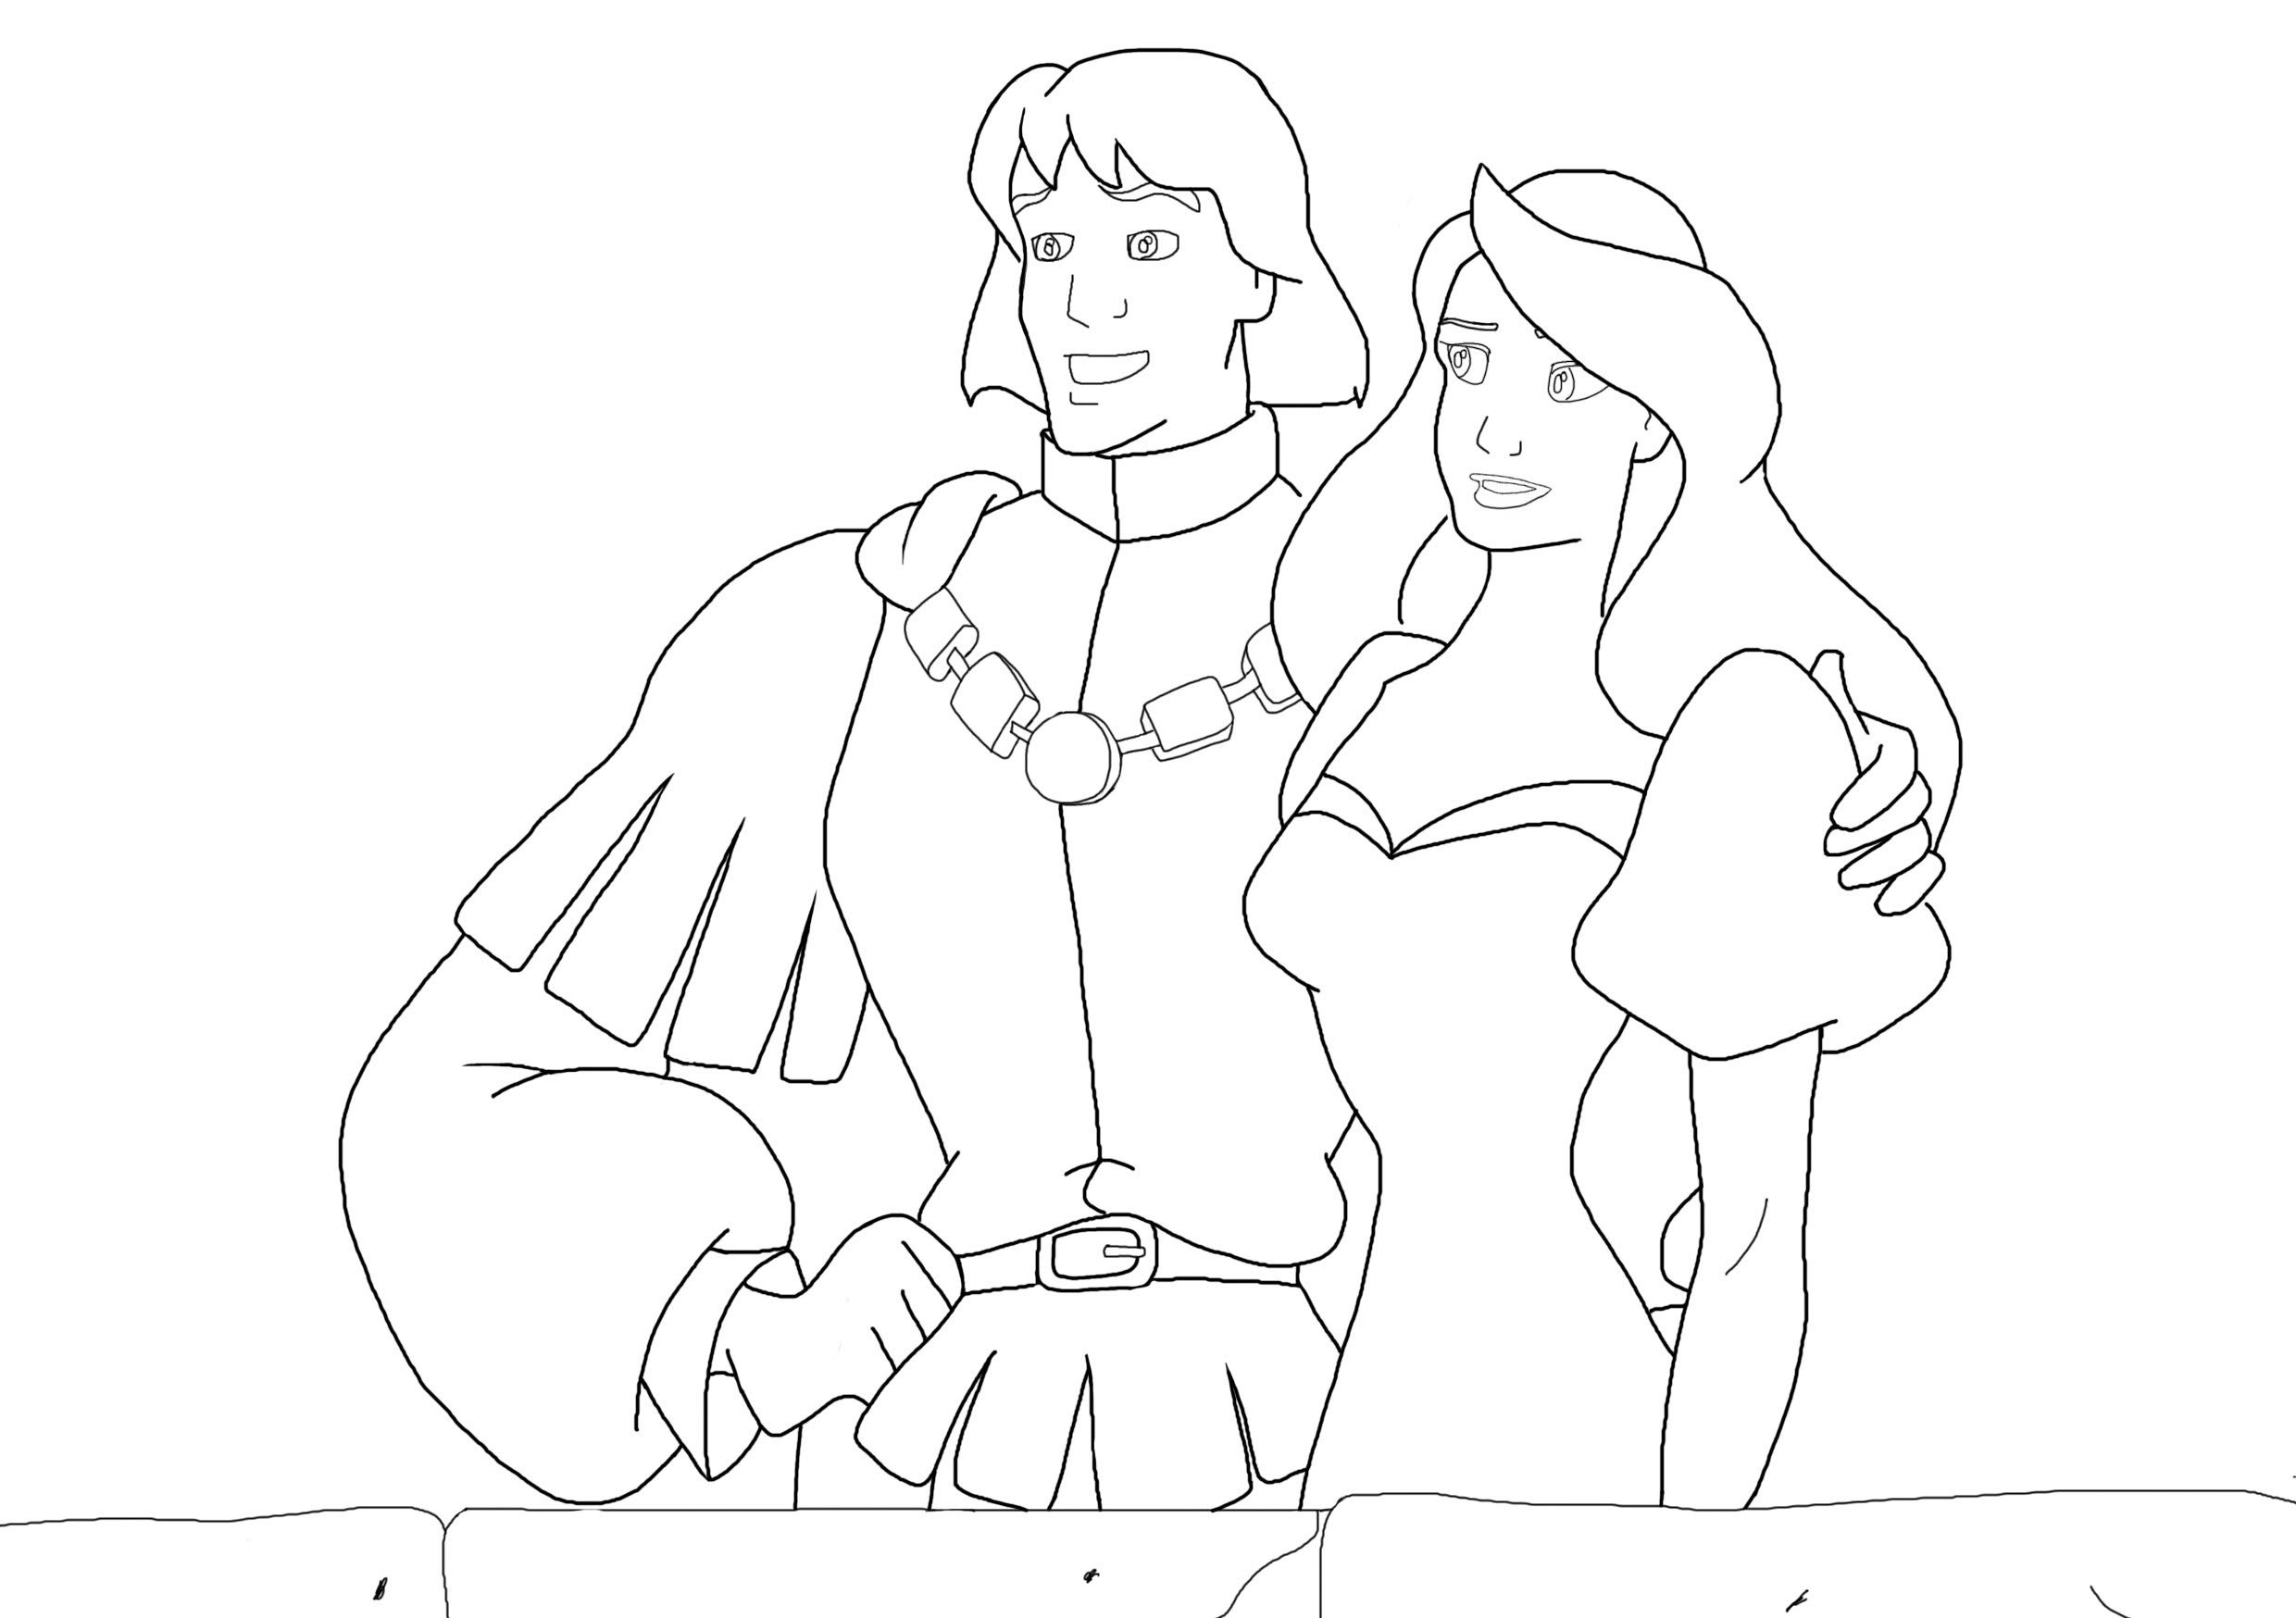 Swan Princess Coloring Pages For Kids And For Adults Princess Coloring Pages Princess Coloring Swan Princess